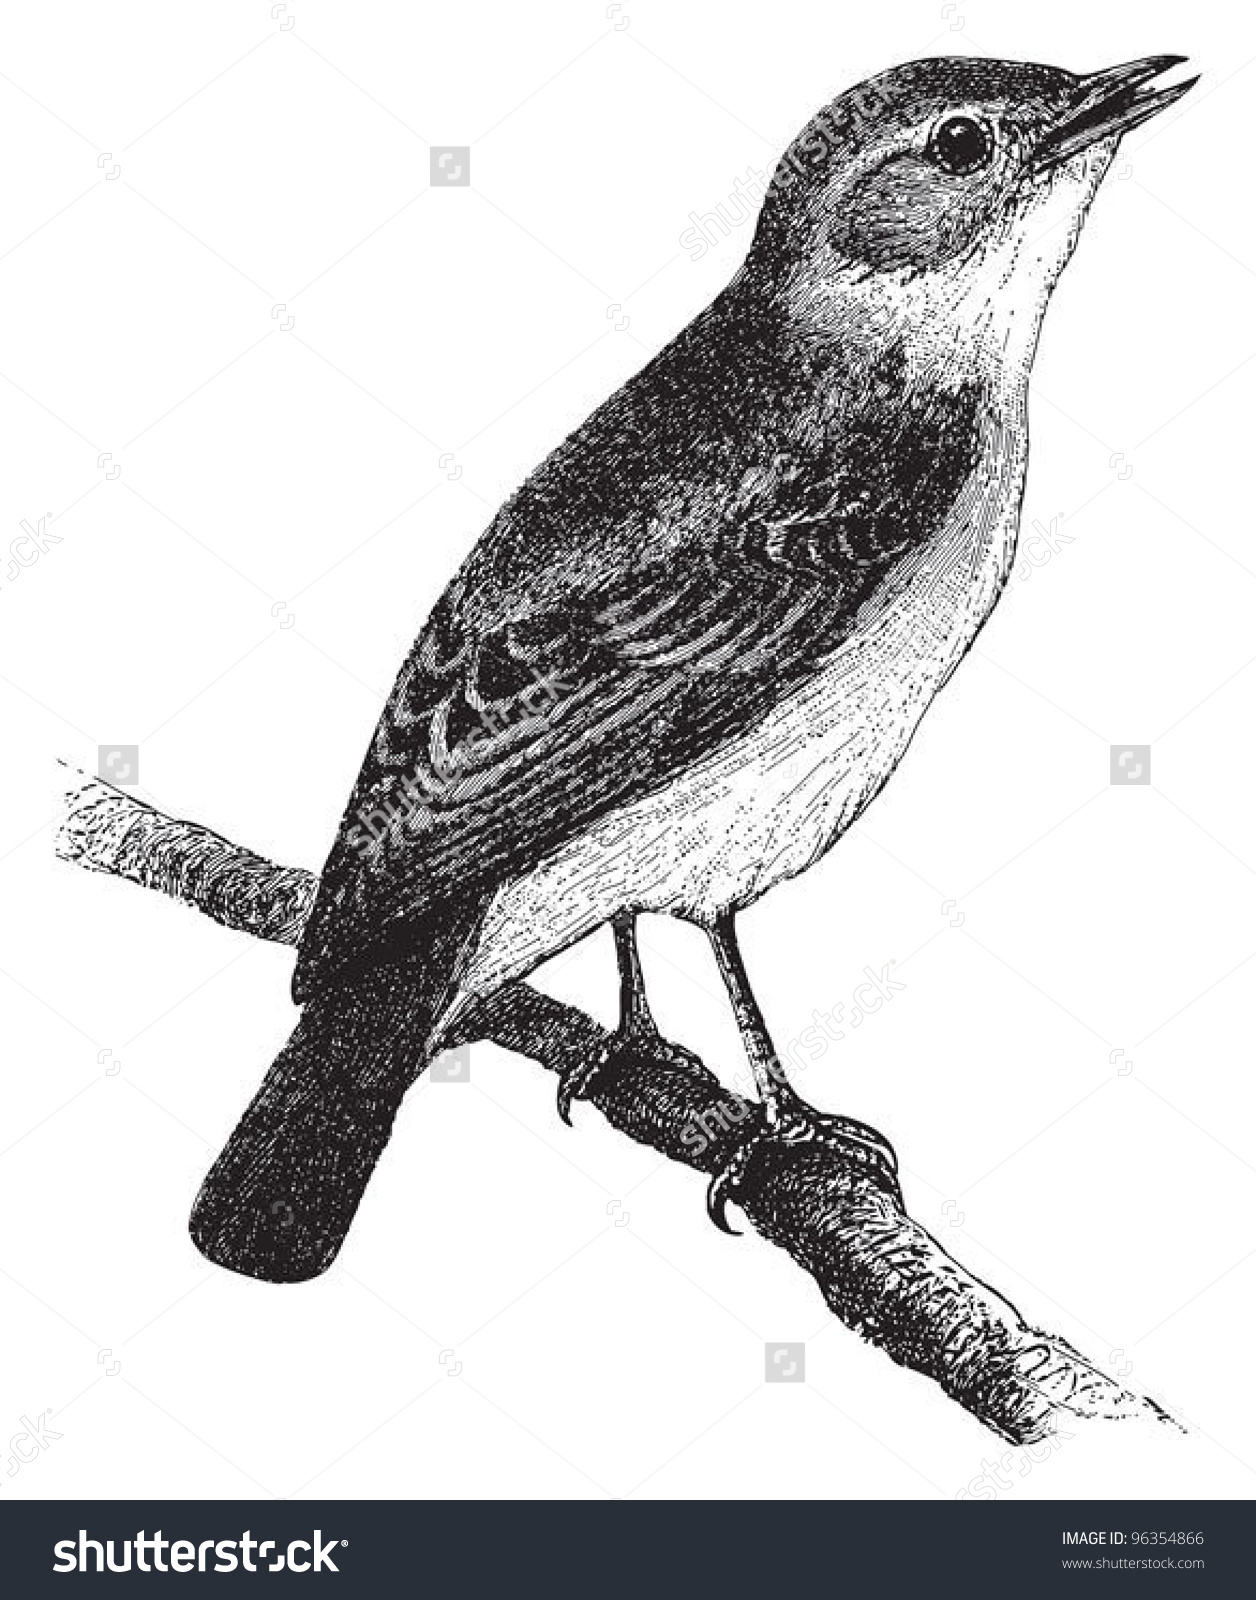 Willow Warbler clipart #6, Download drawings